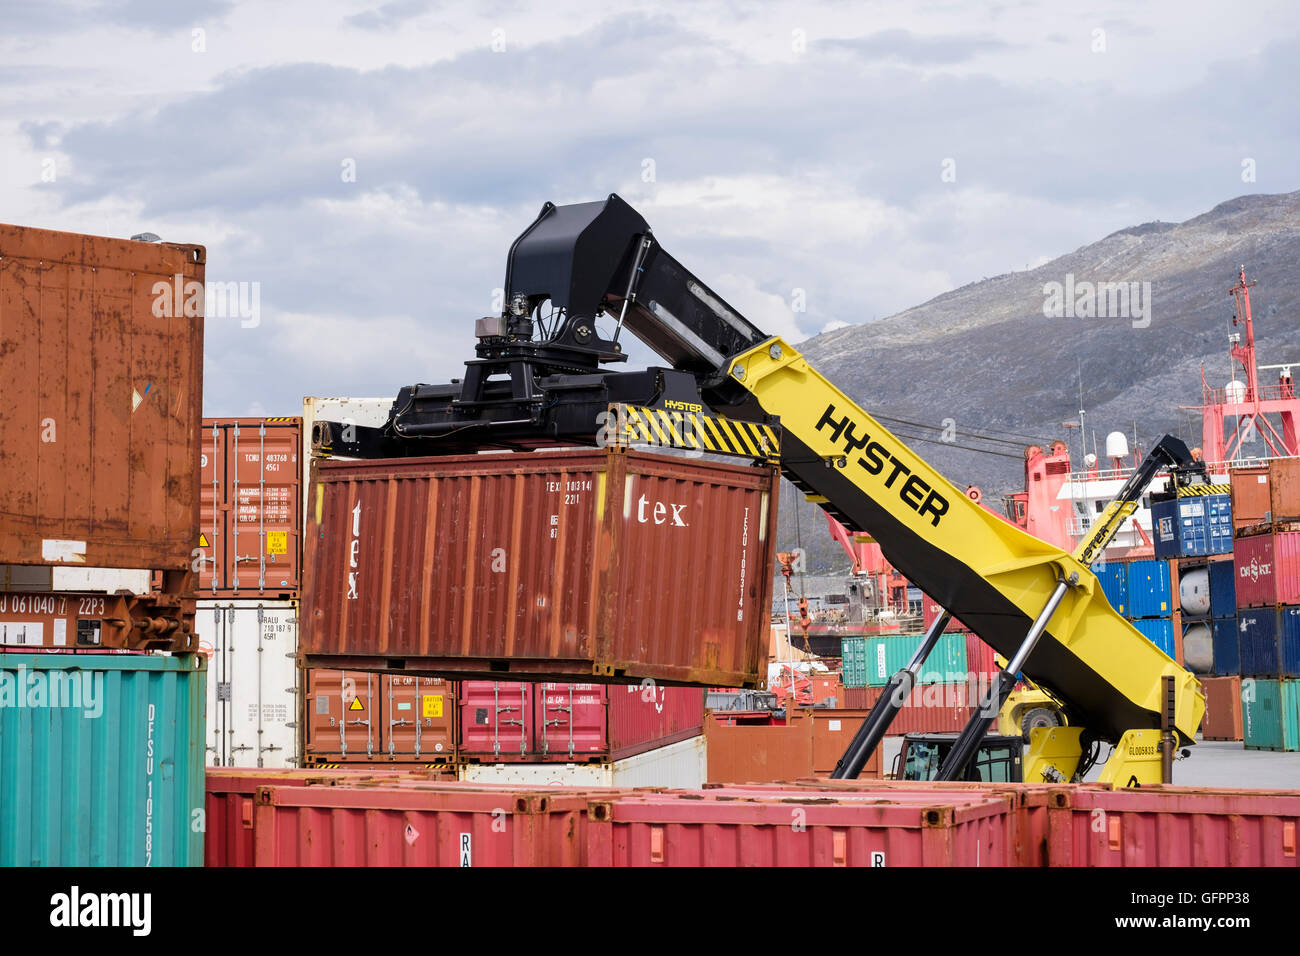 Hydraulic Hyster electric forklift truck lifting freight shipping containers in port. Atlantic Harbour Nuuk Sermersooq Stock Photo